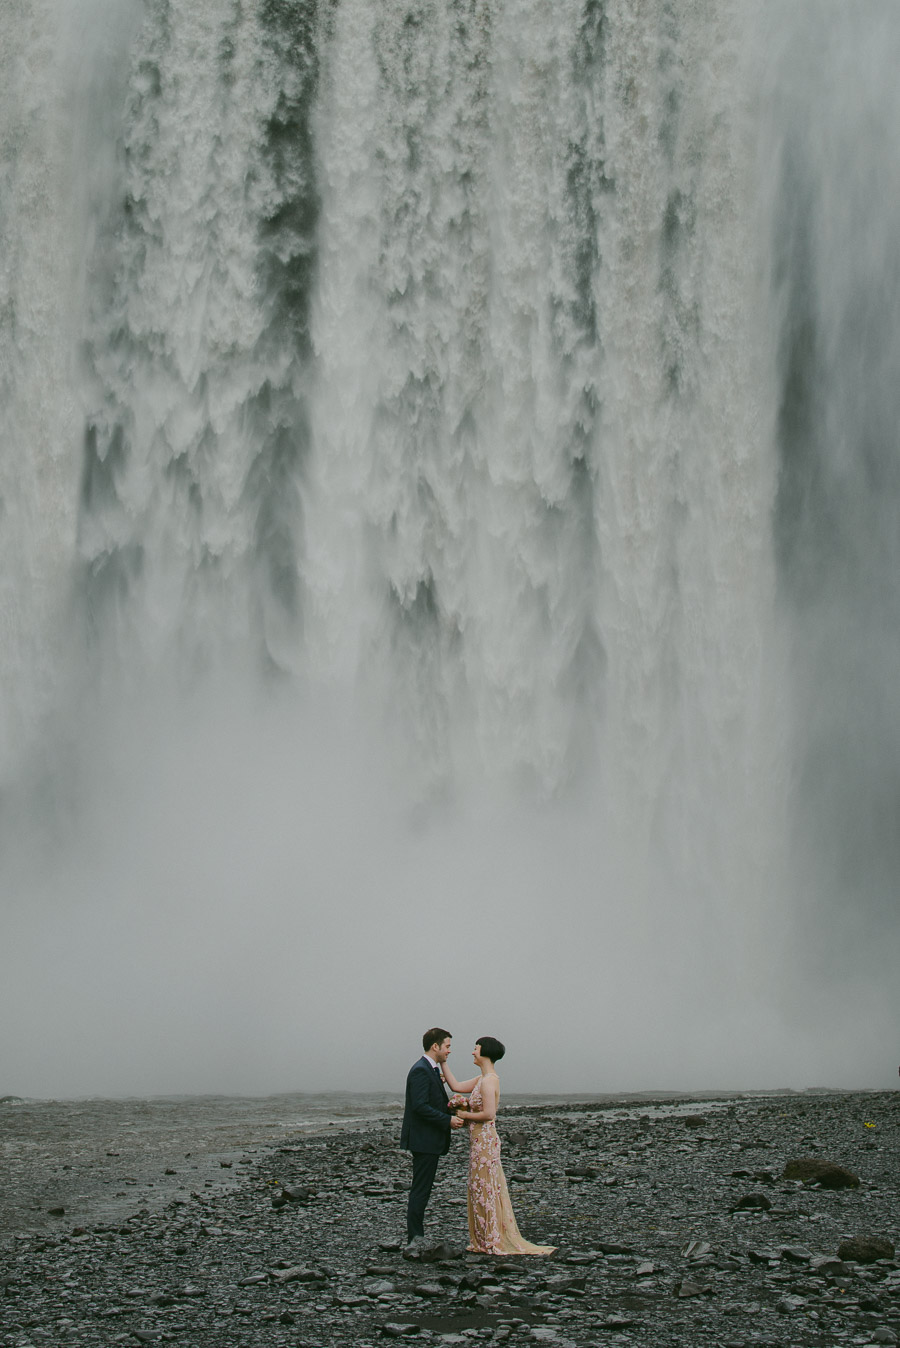 maja_patrick_iceland_wedding_photographer_mait_juriado-026